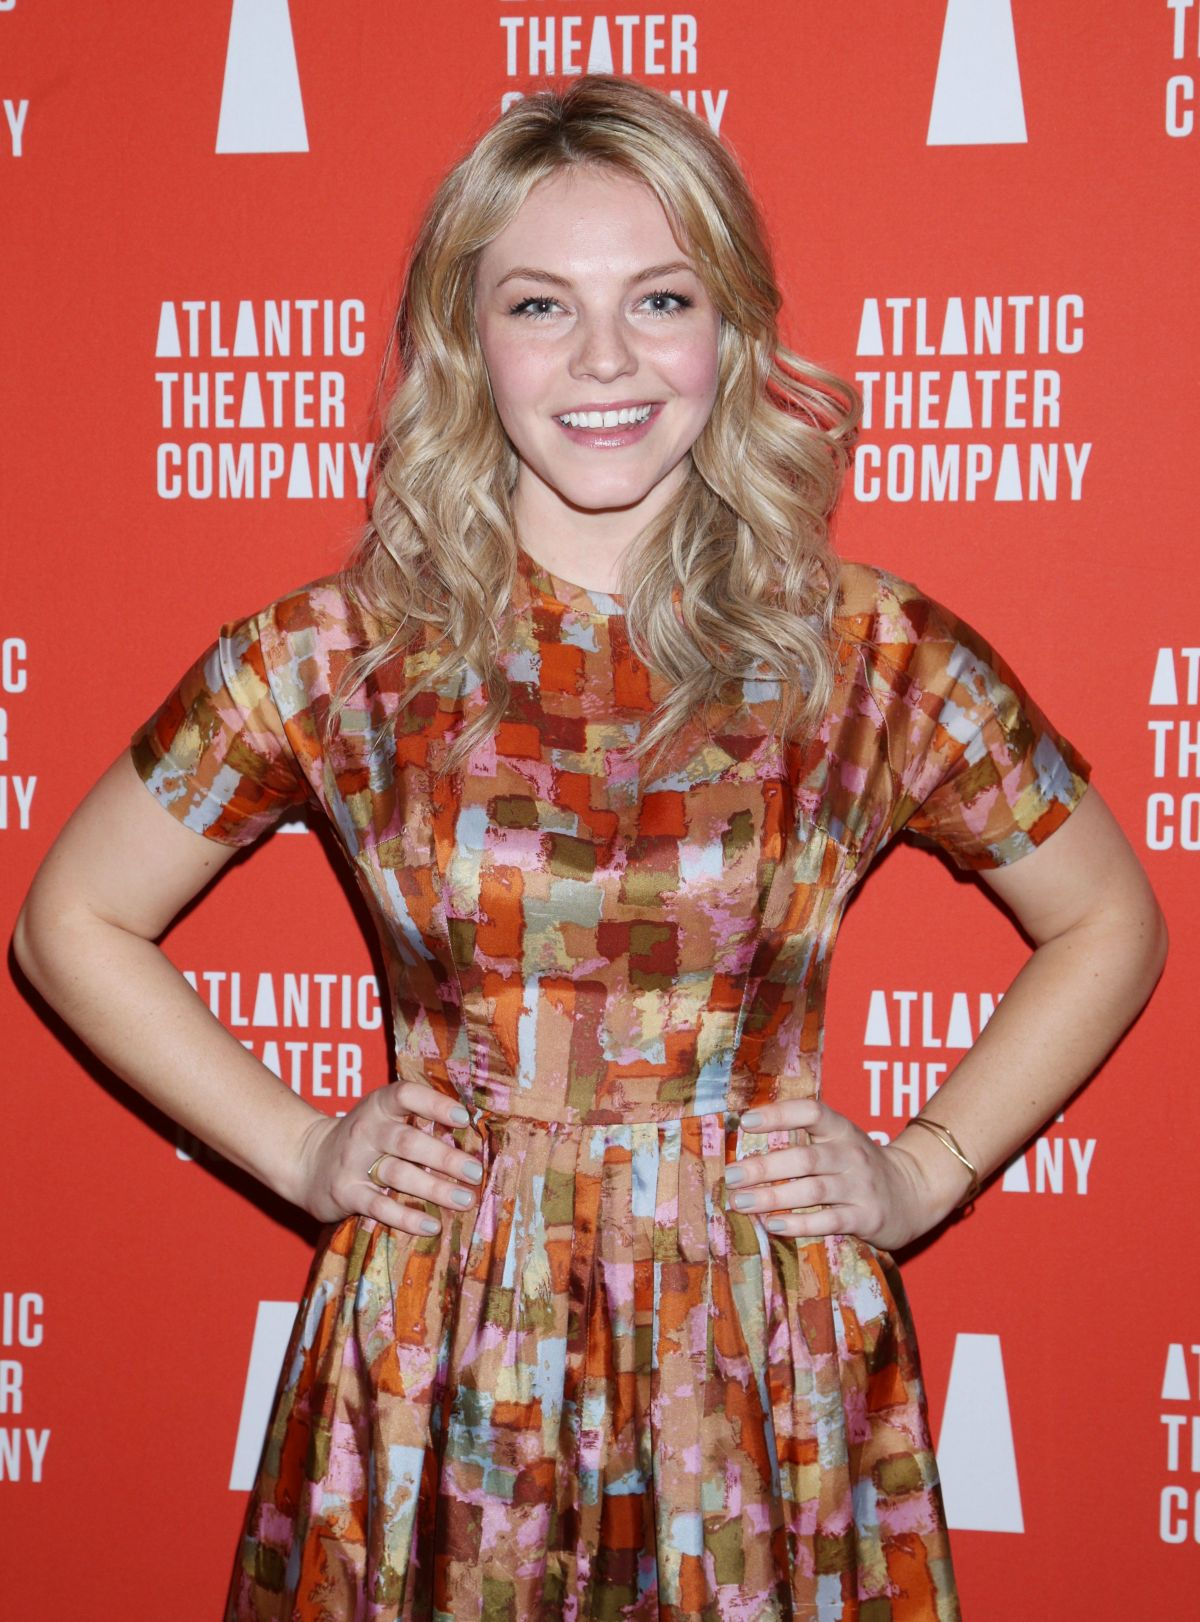 ELOISE MUMFORD at Atlantic Theater Company Actors